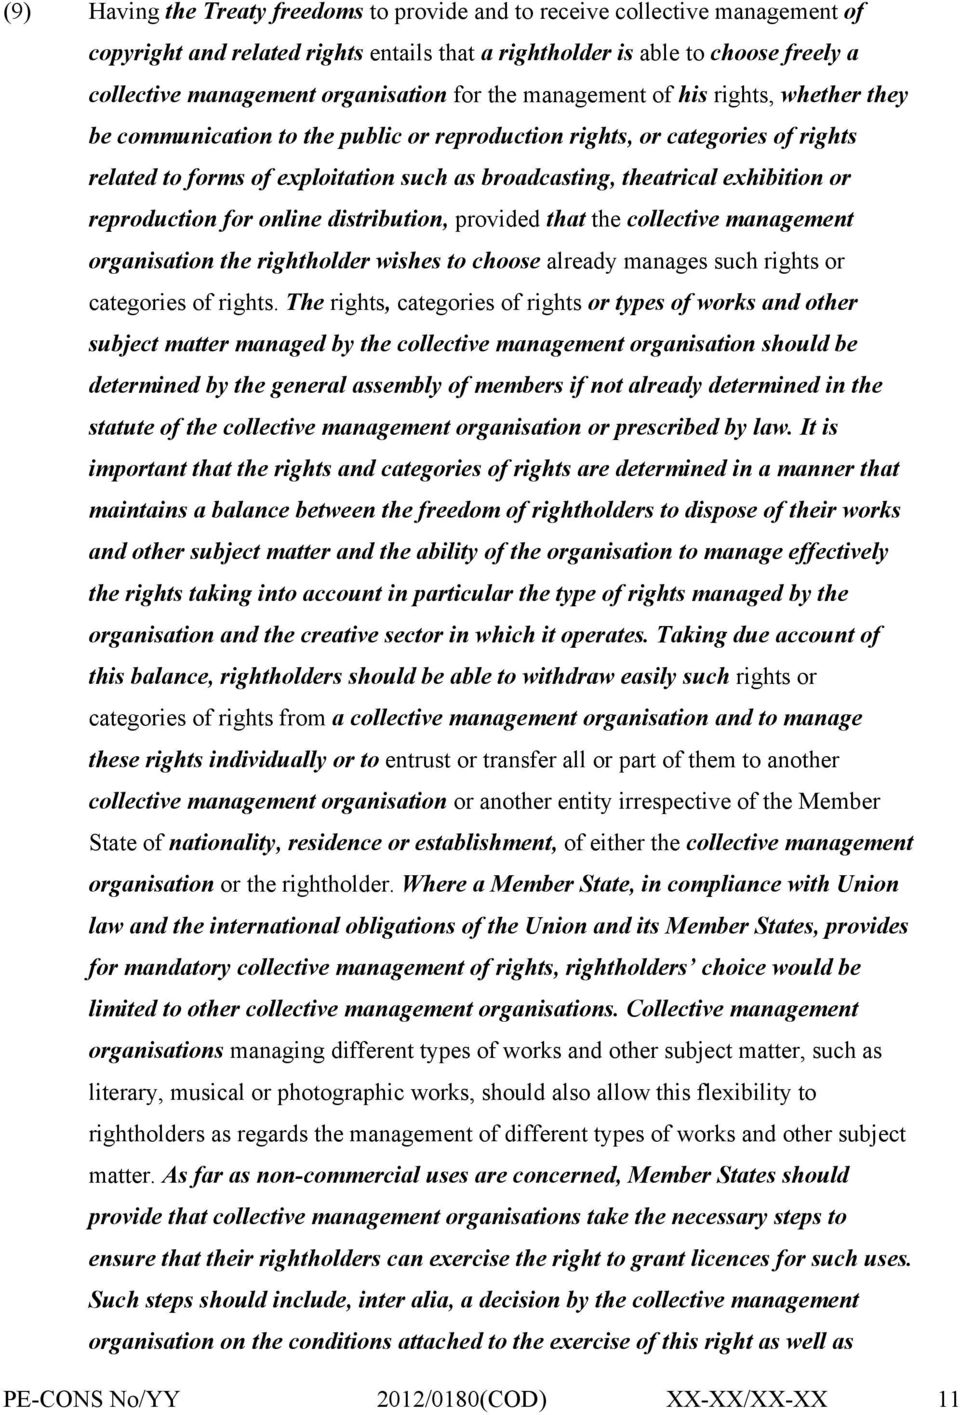 exhibition or reproduction for online distribution, provided that the collective management organisation the rightholder wishes to choose already manages such rights or categories of rights.